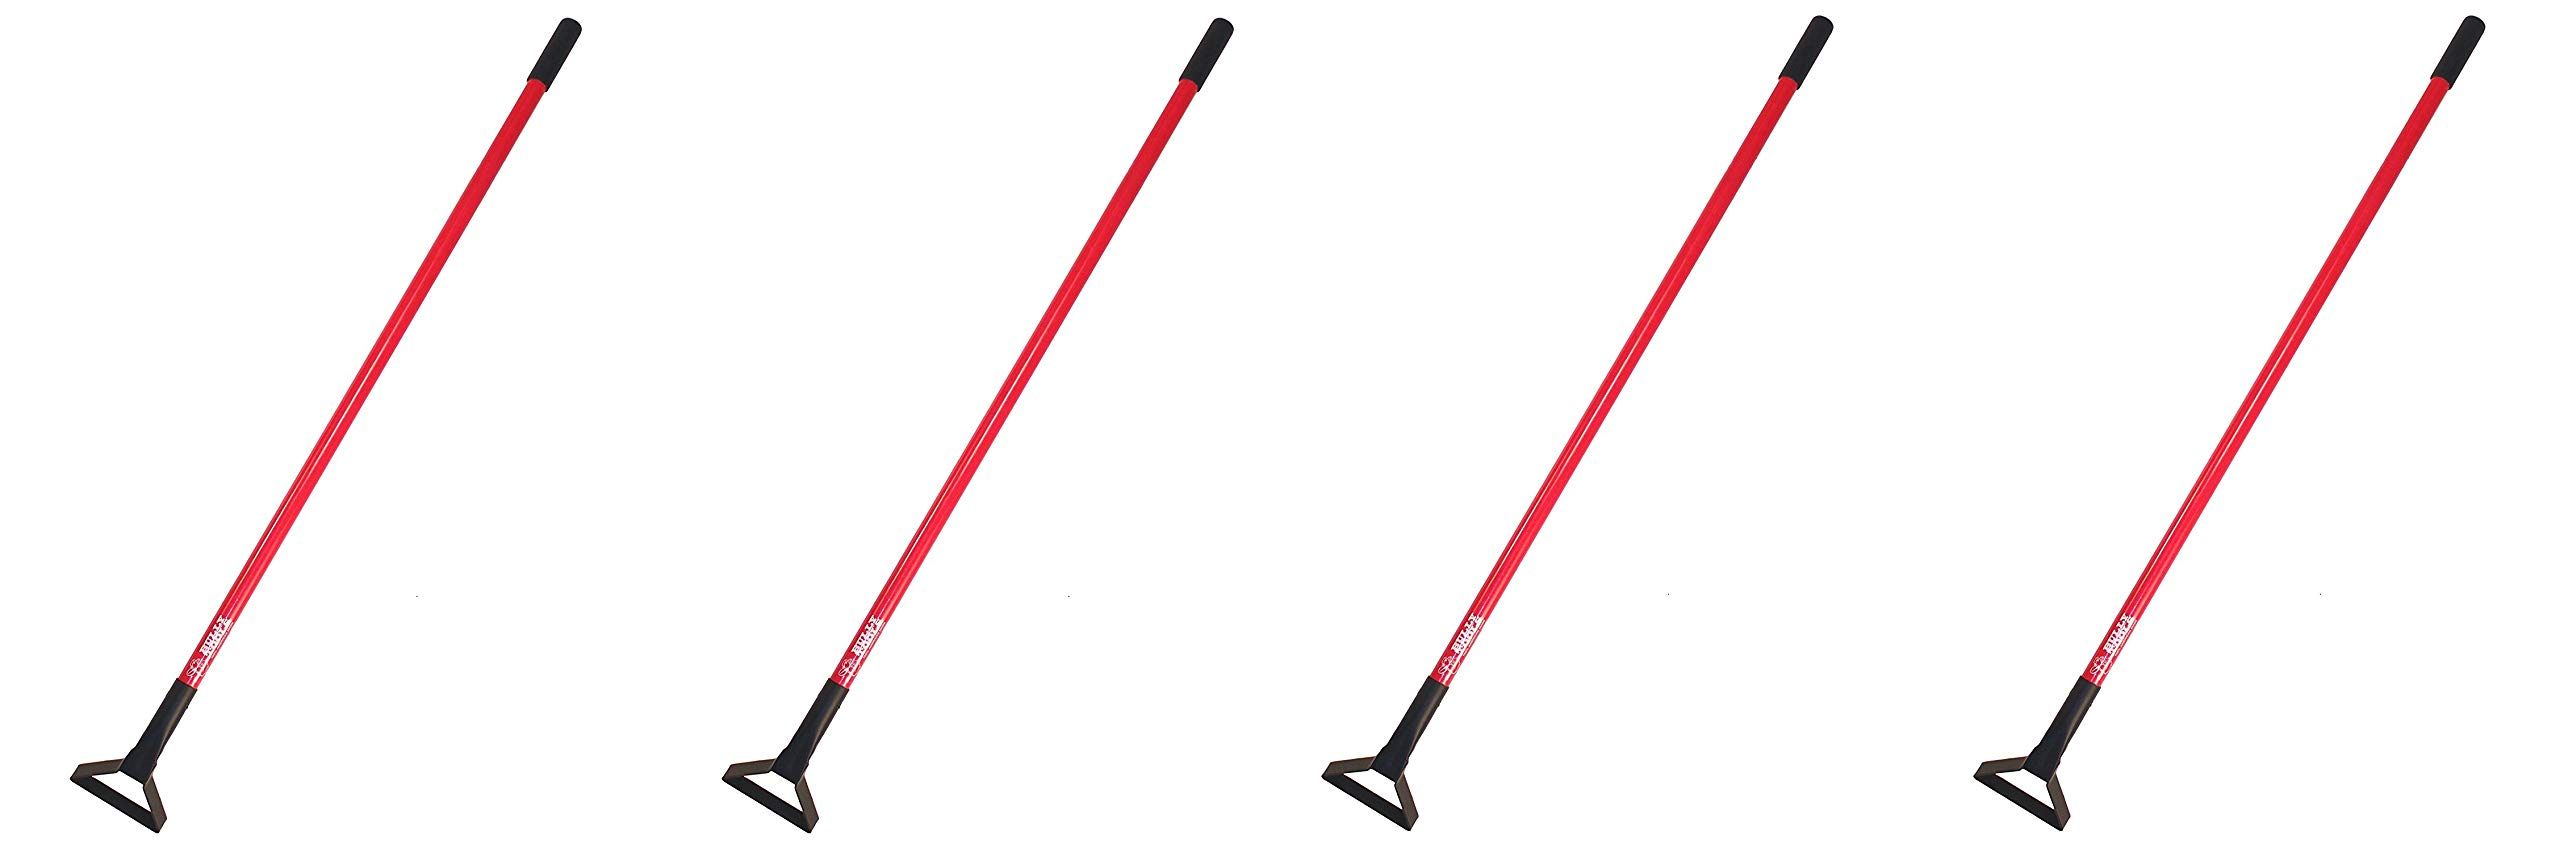 Bully Tools 92348 12-Gauge Loop Hoe with Fiberglass Handle (Pack of 4)